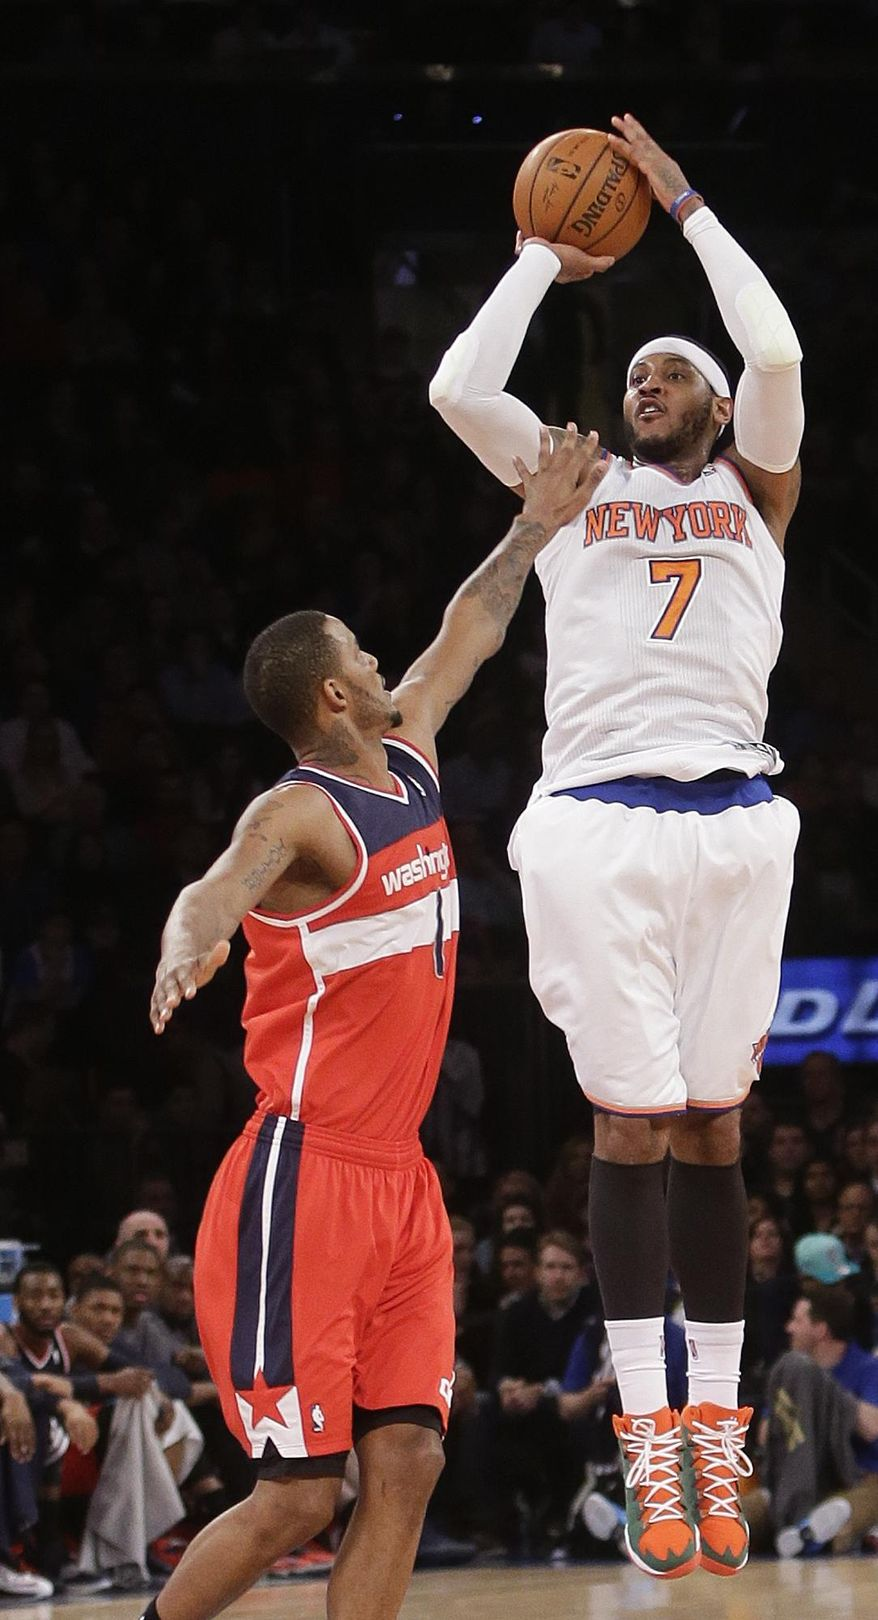 New York Knicks' Carmelo Anthony (7) shoots over Washington Wizards' Trevor Ariza (1) during the first half of an NBA basketball game Friday, April 4, 2014, in New York. (AP Photo/Frank Franklin II)